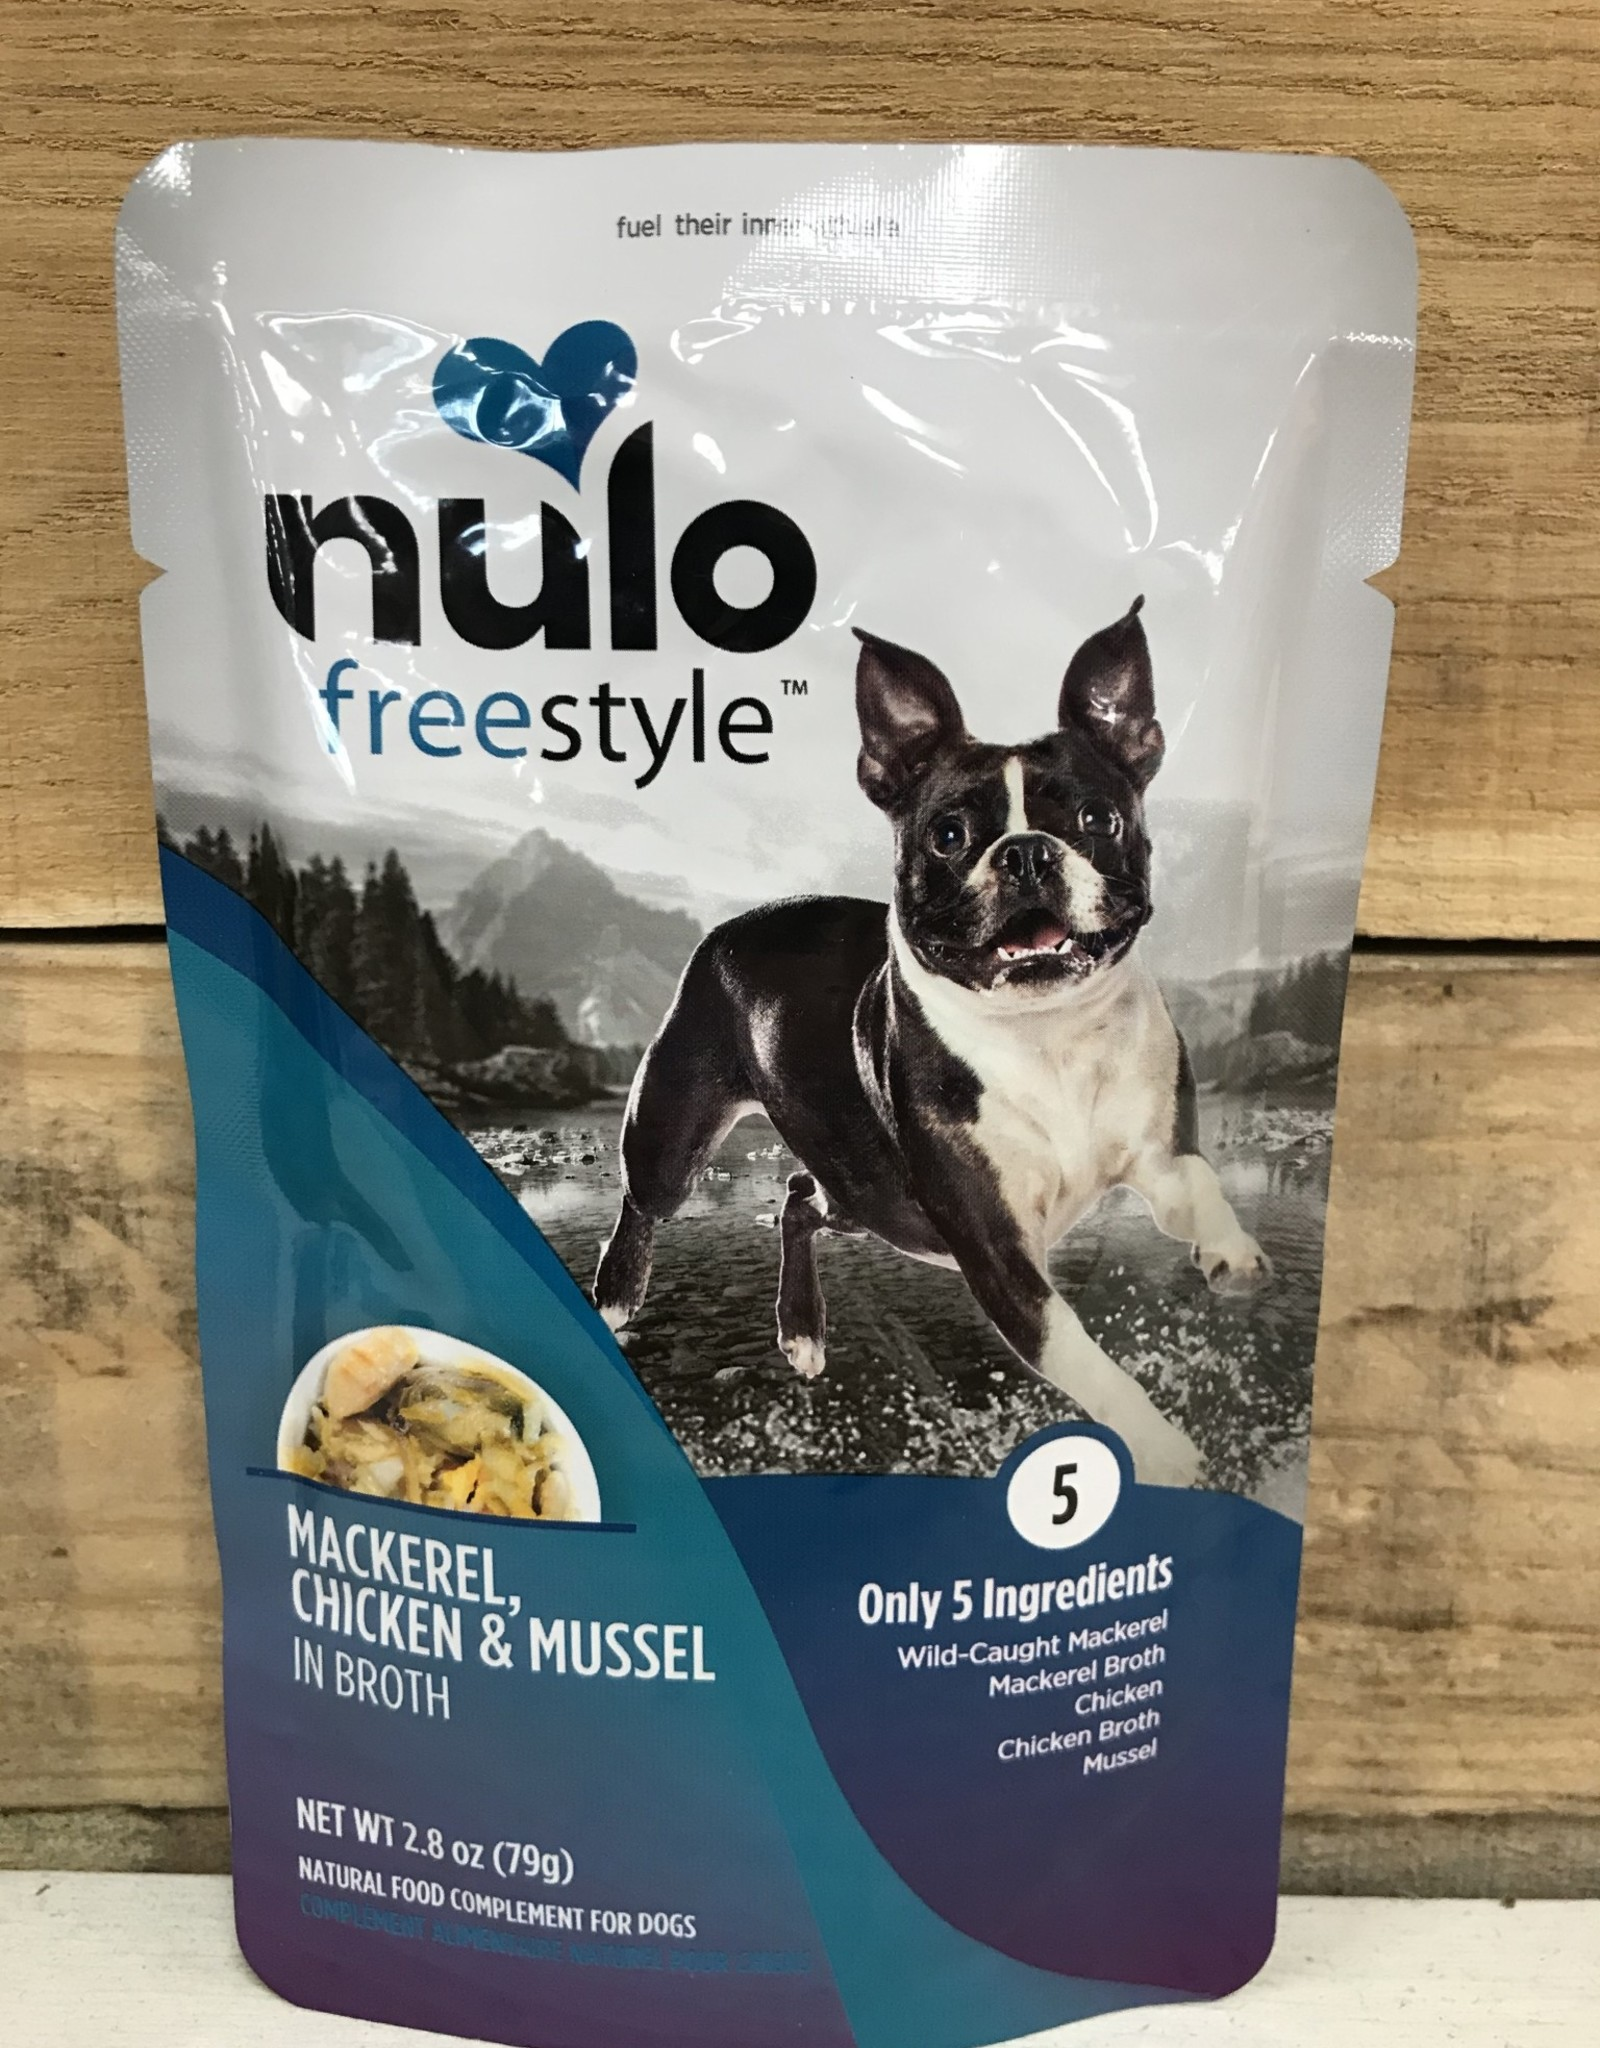 Nulo Nulo FreeStyle 2.8oz Grain Free Dog Mackerel, Chicken & Mussel